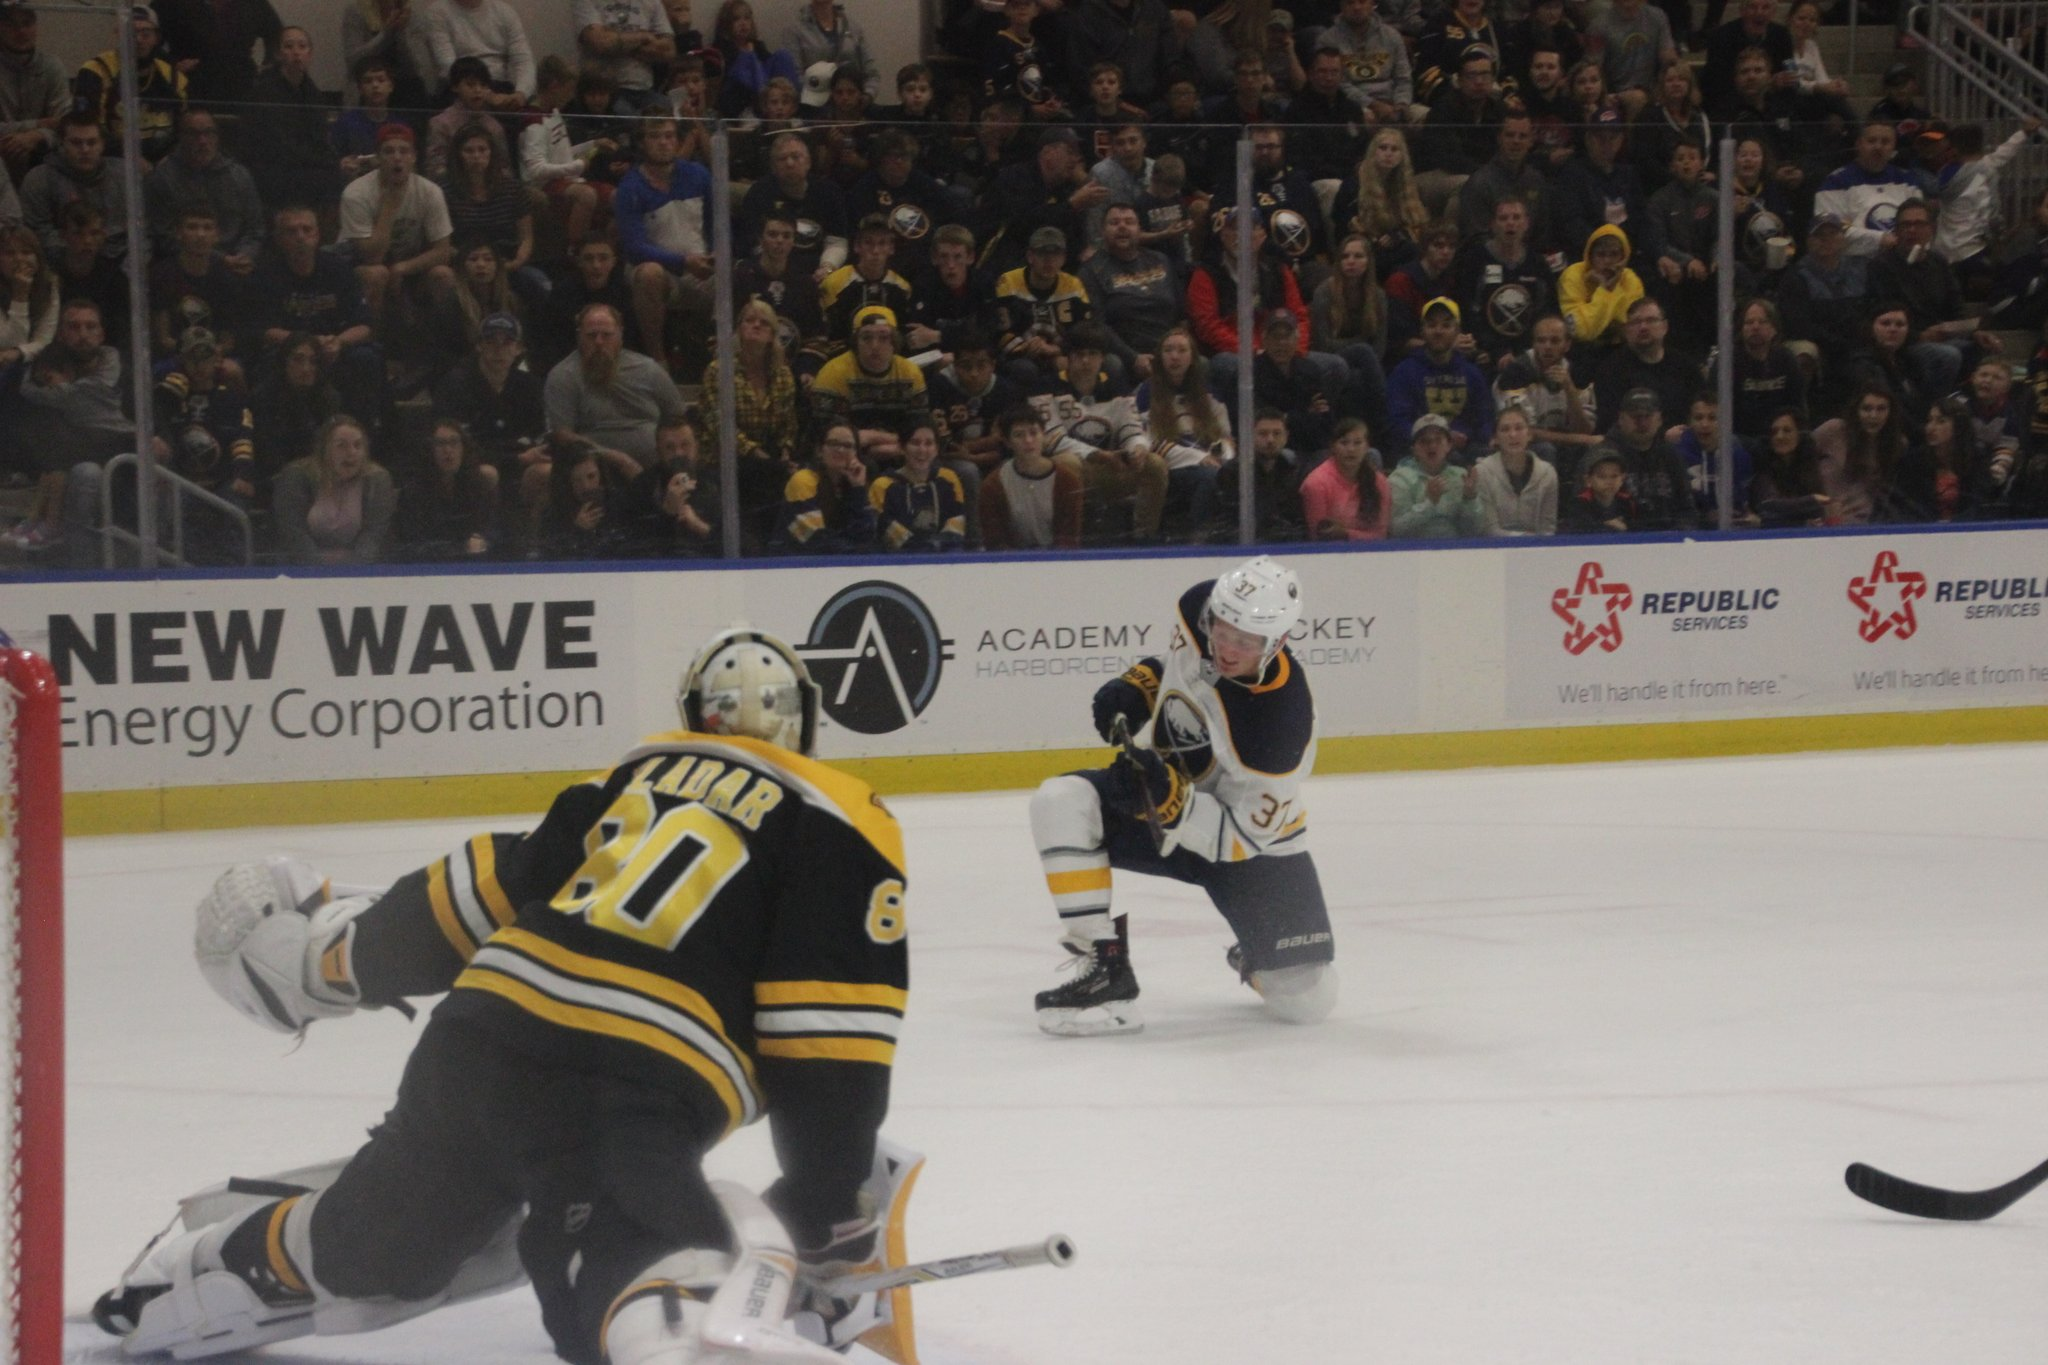 Prospects Had a Challenge in Game vs Bruins